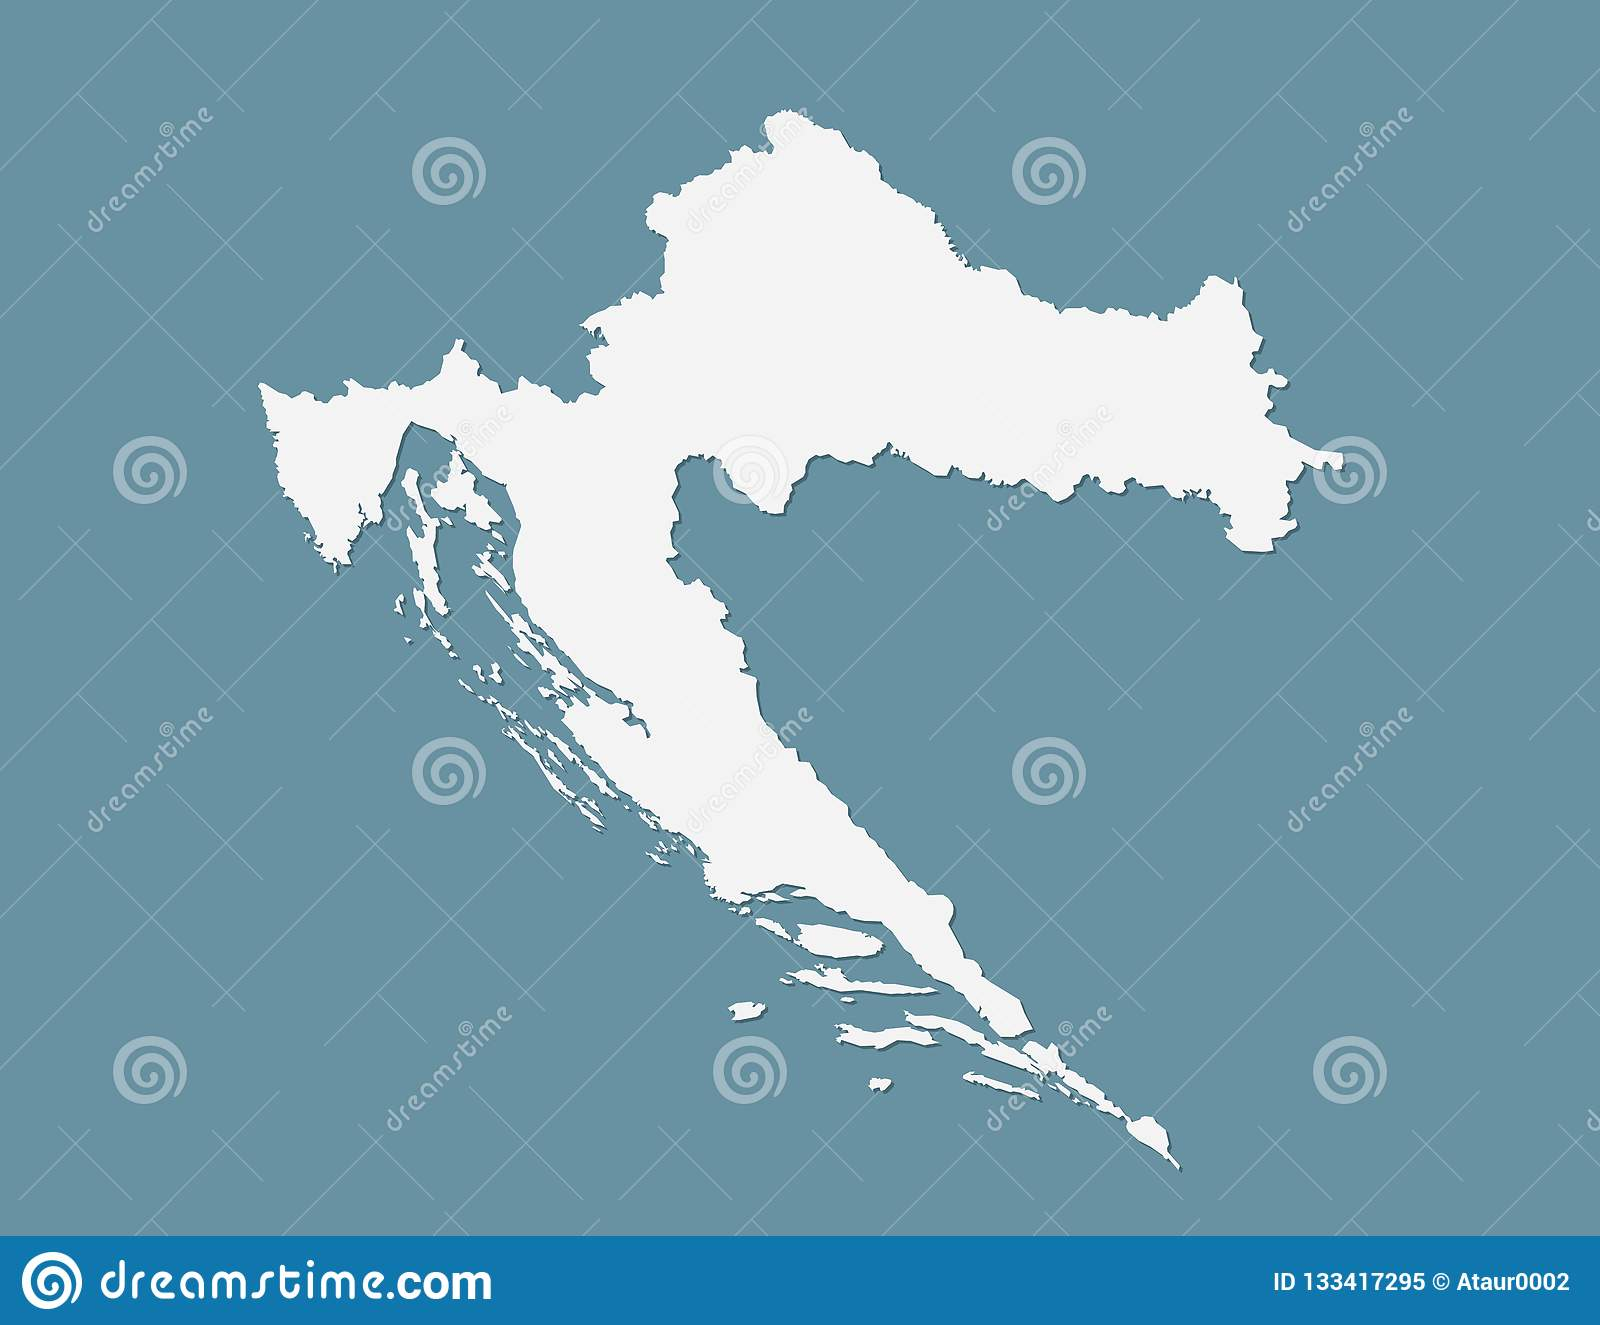 Blue Color Croatia Map Vector With Single Border Line On Dark ...